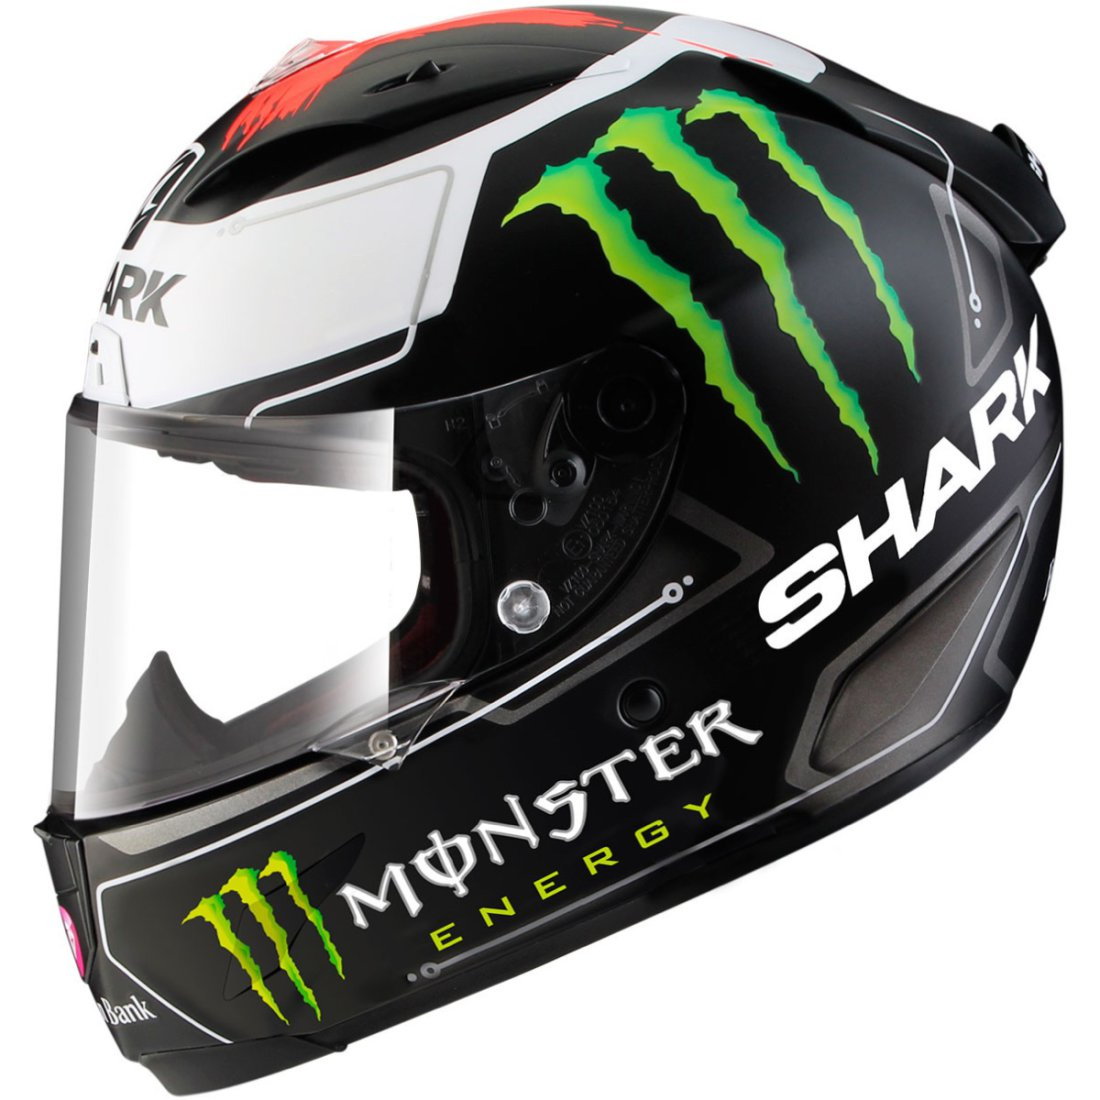 casco shark race r pro lorenzo monster mat kwr motocard. Black Bedroom Furniture Sets. Home Design Ideas